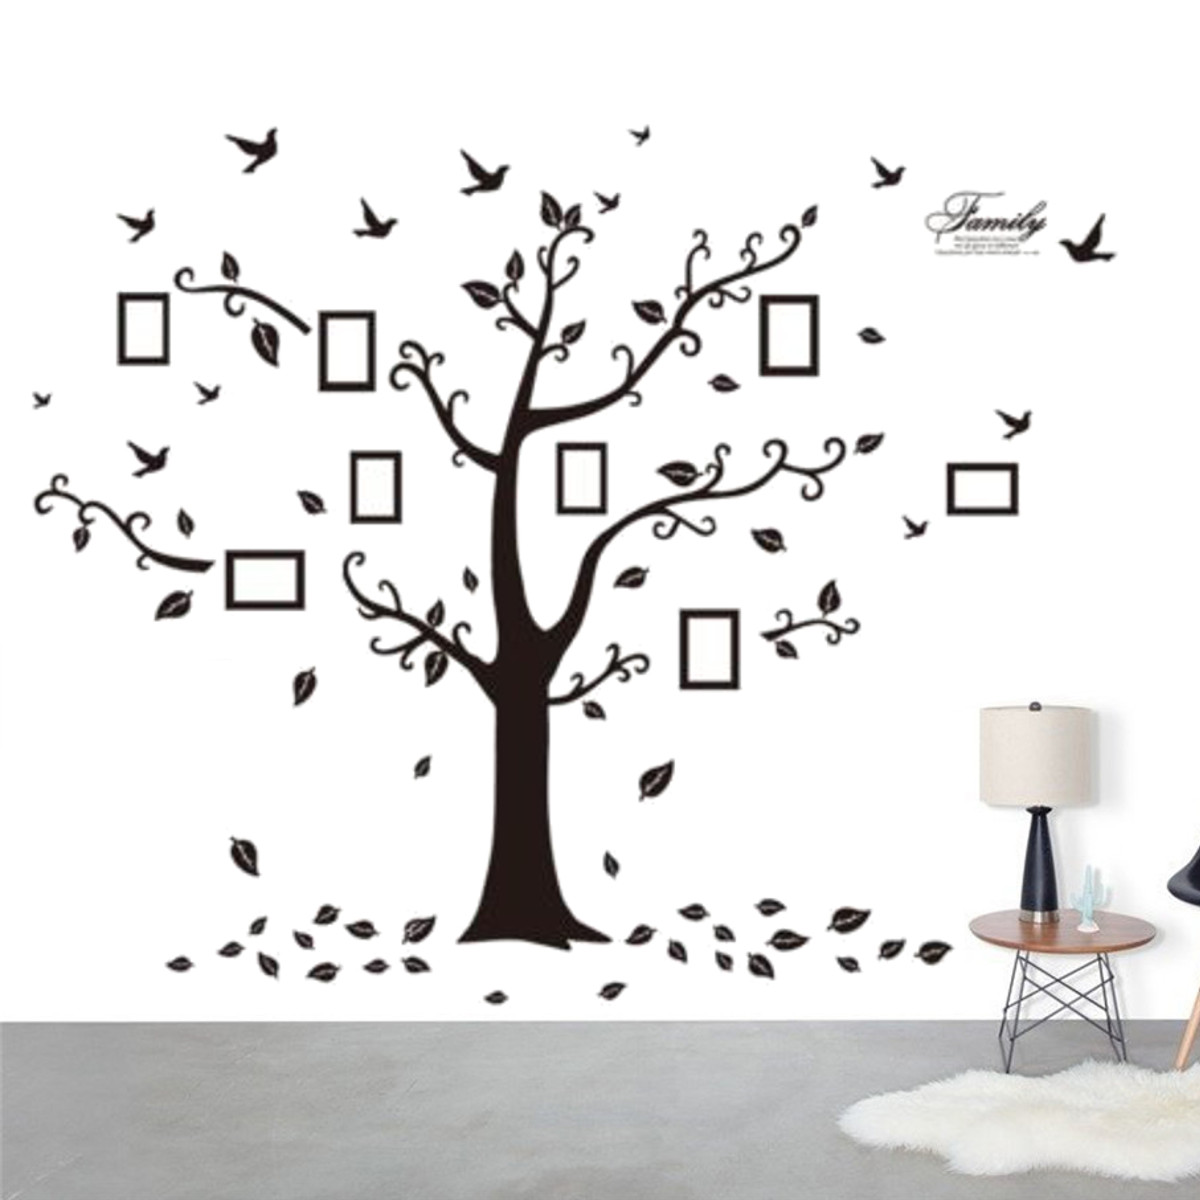 Pvc removable family tree wall stickers large photo pictures frame pvc removable family tree wall stickers large photo pictures frame wallpaper home coffee shop decoration art vinyl decals in wall stickers from home amipublicfo Choice Image